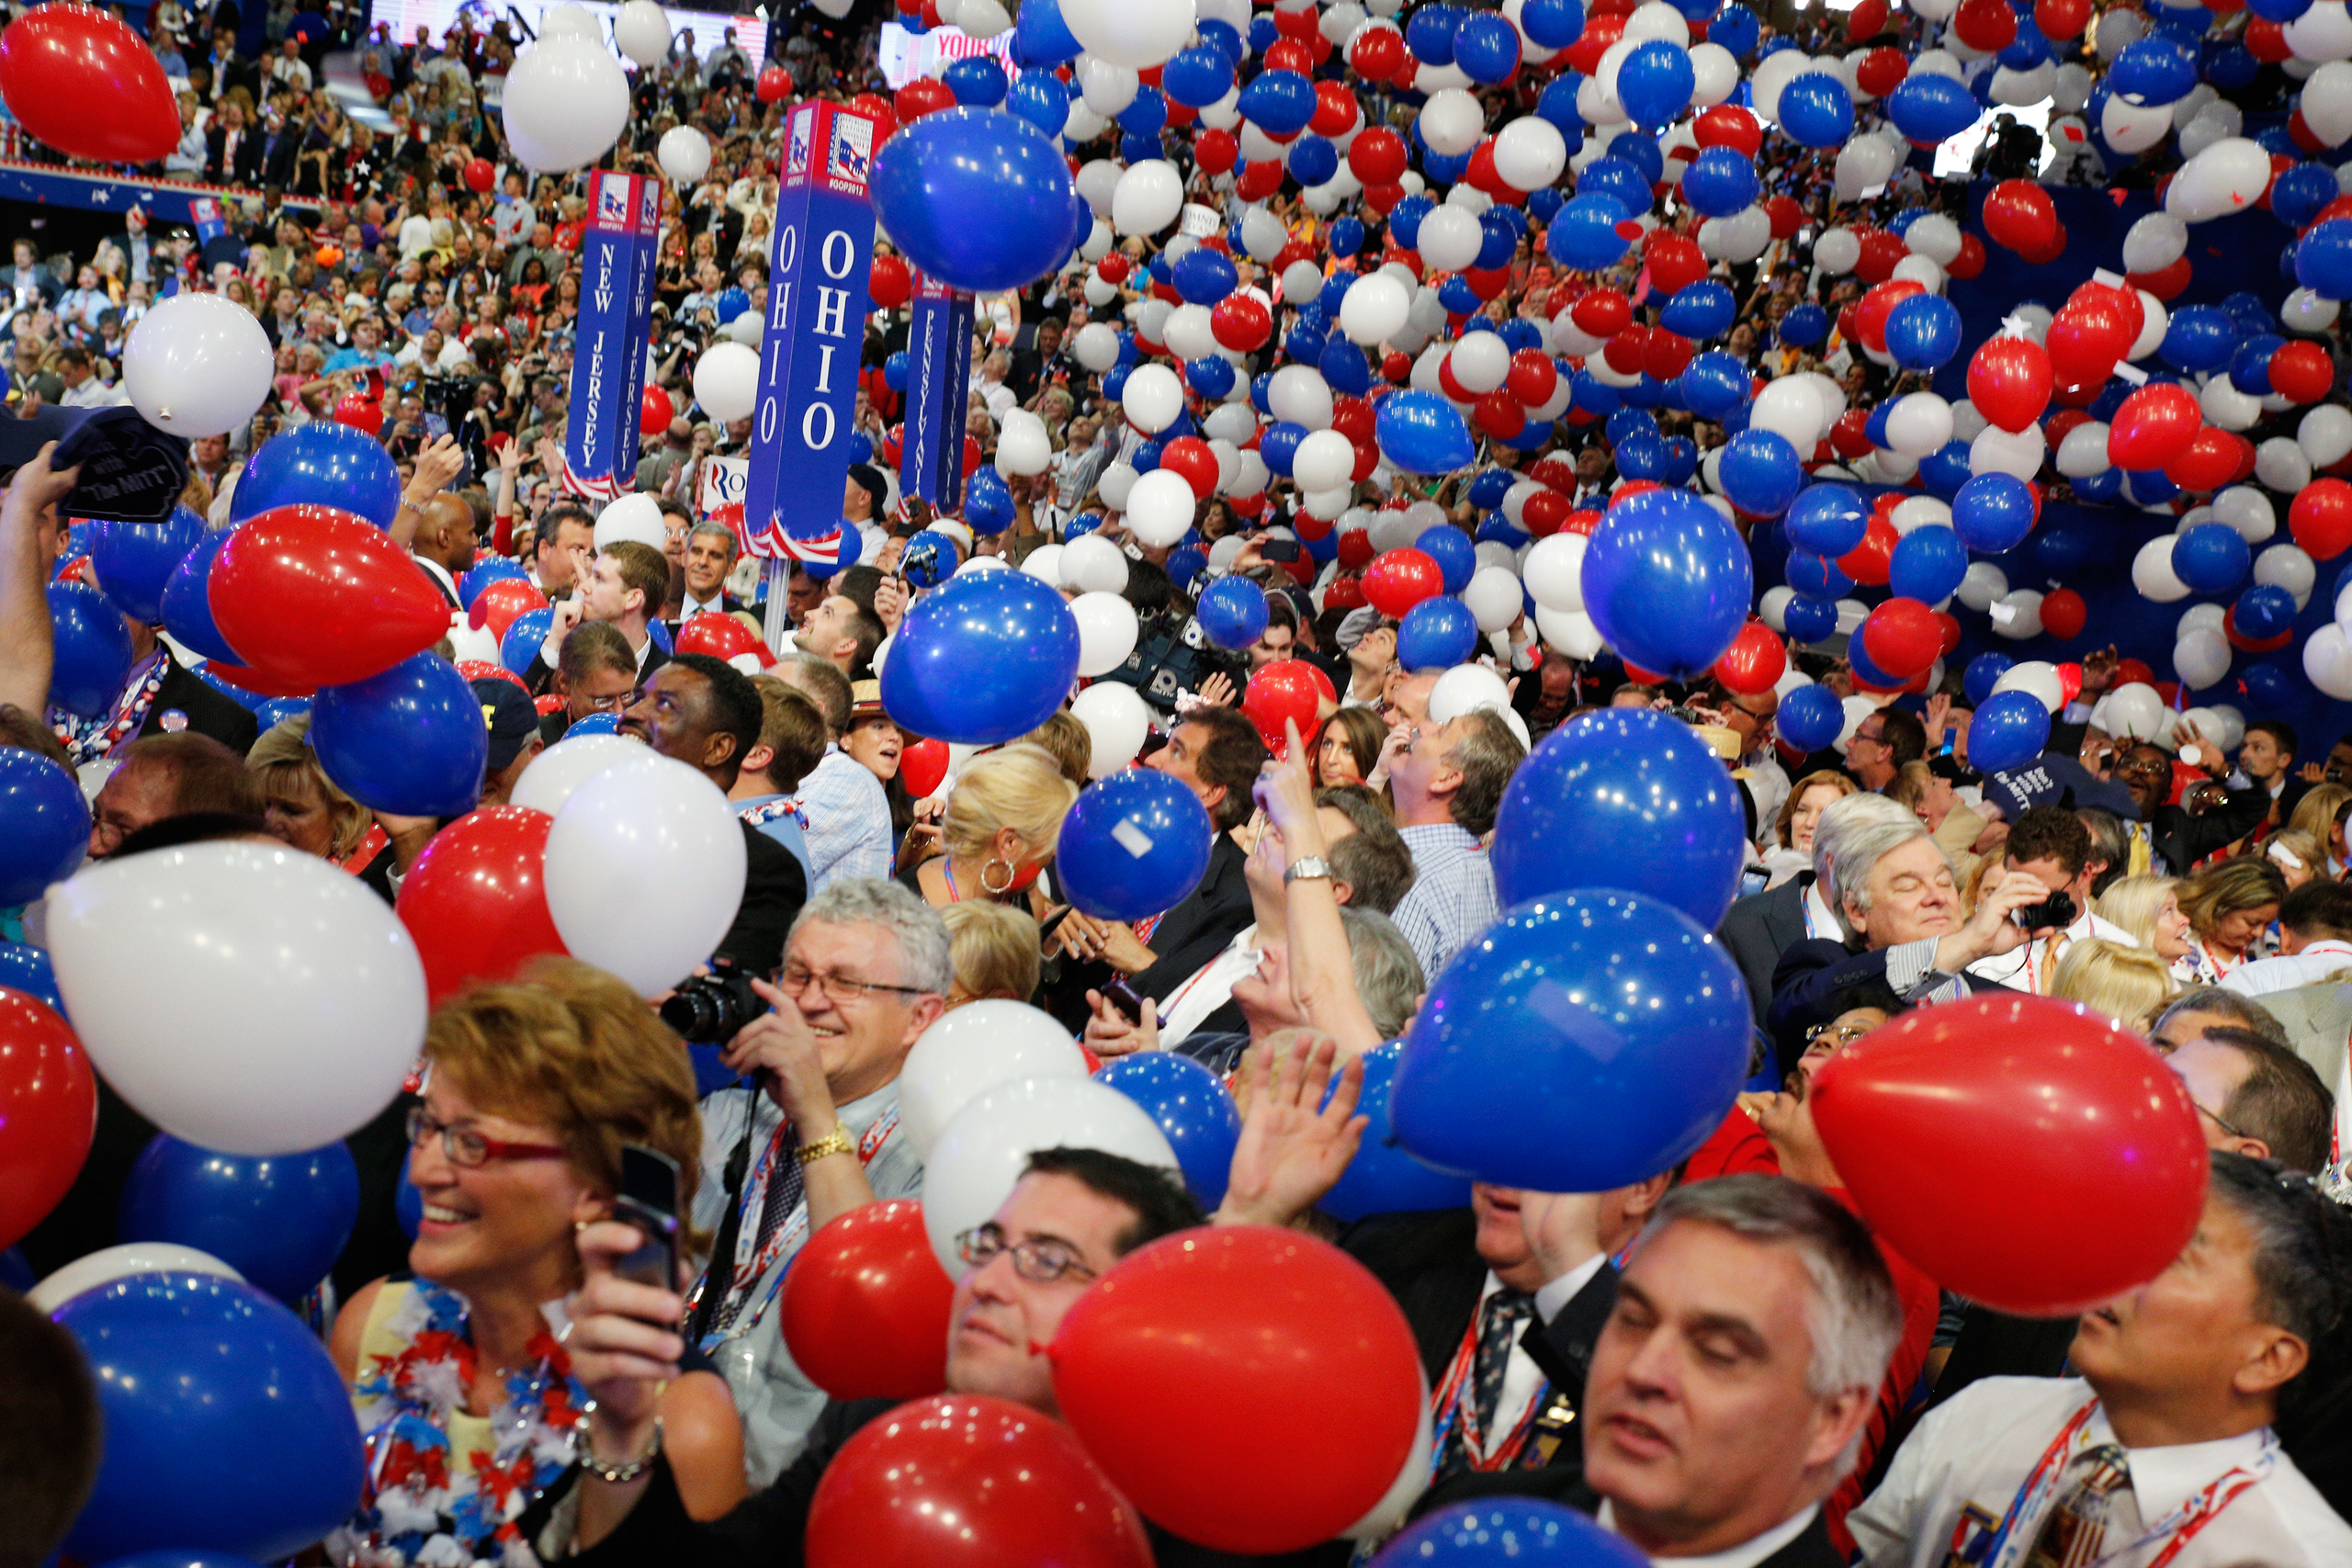 Trump could find that many of his convention delegates have other loyalties when Republicans gather in Cleveland onJuly18